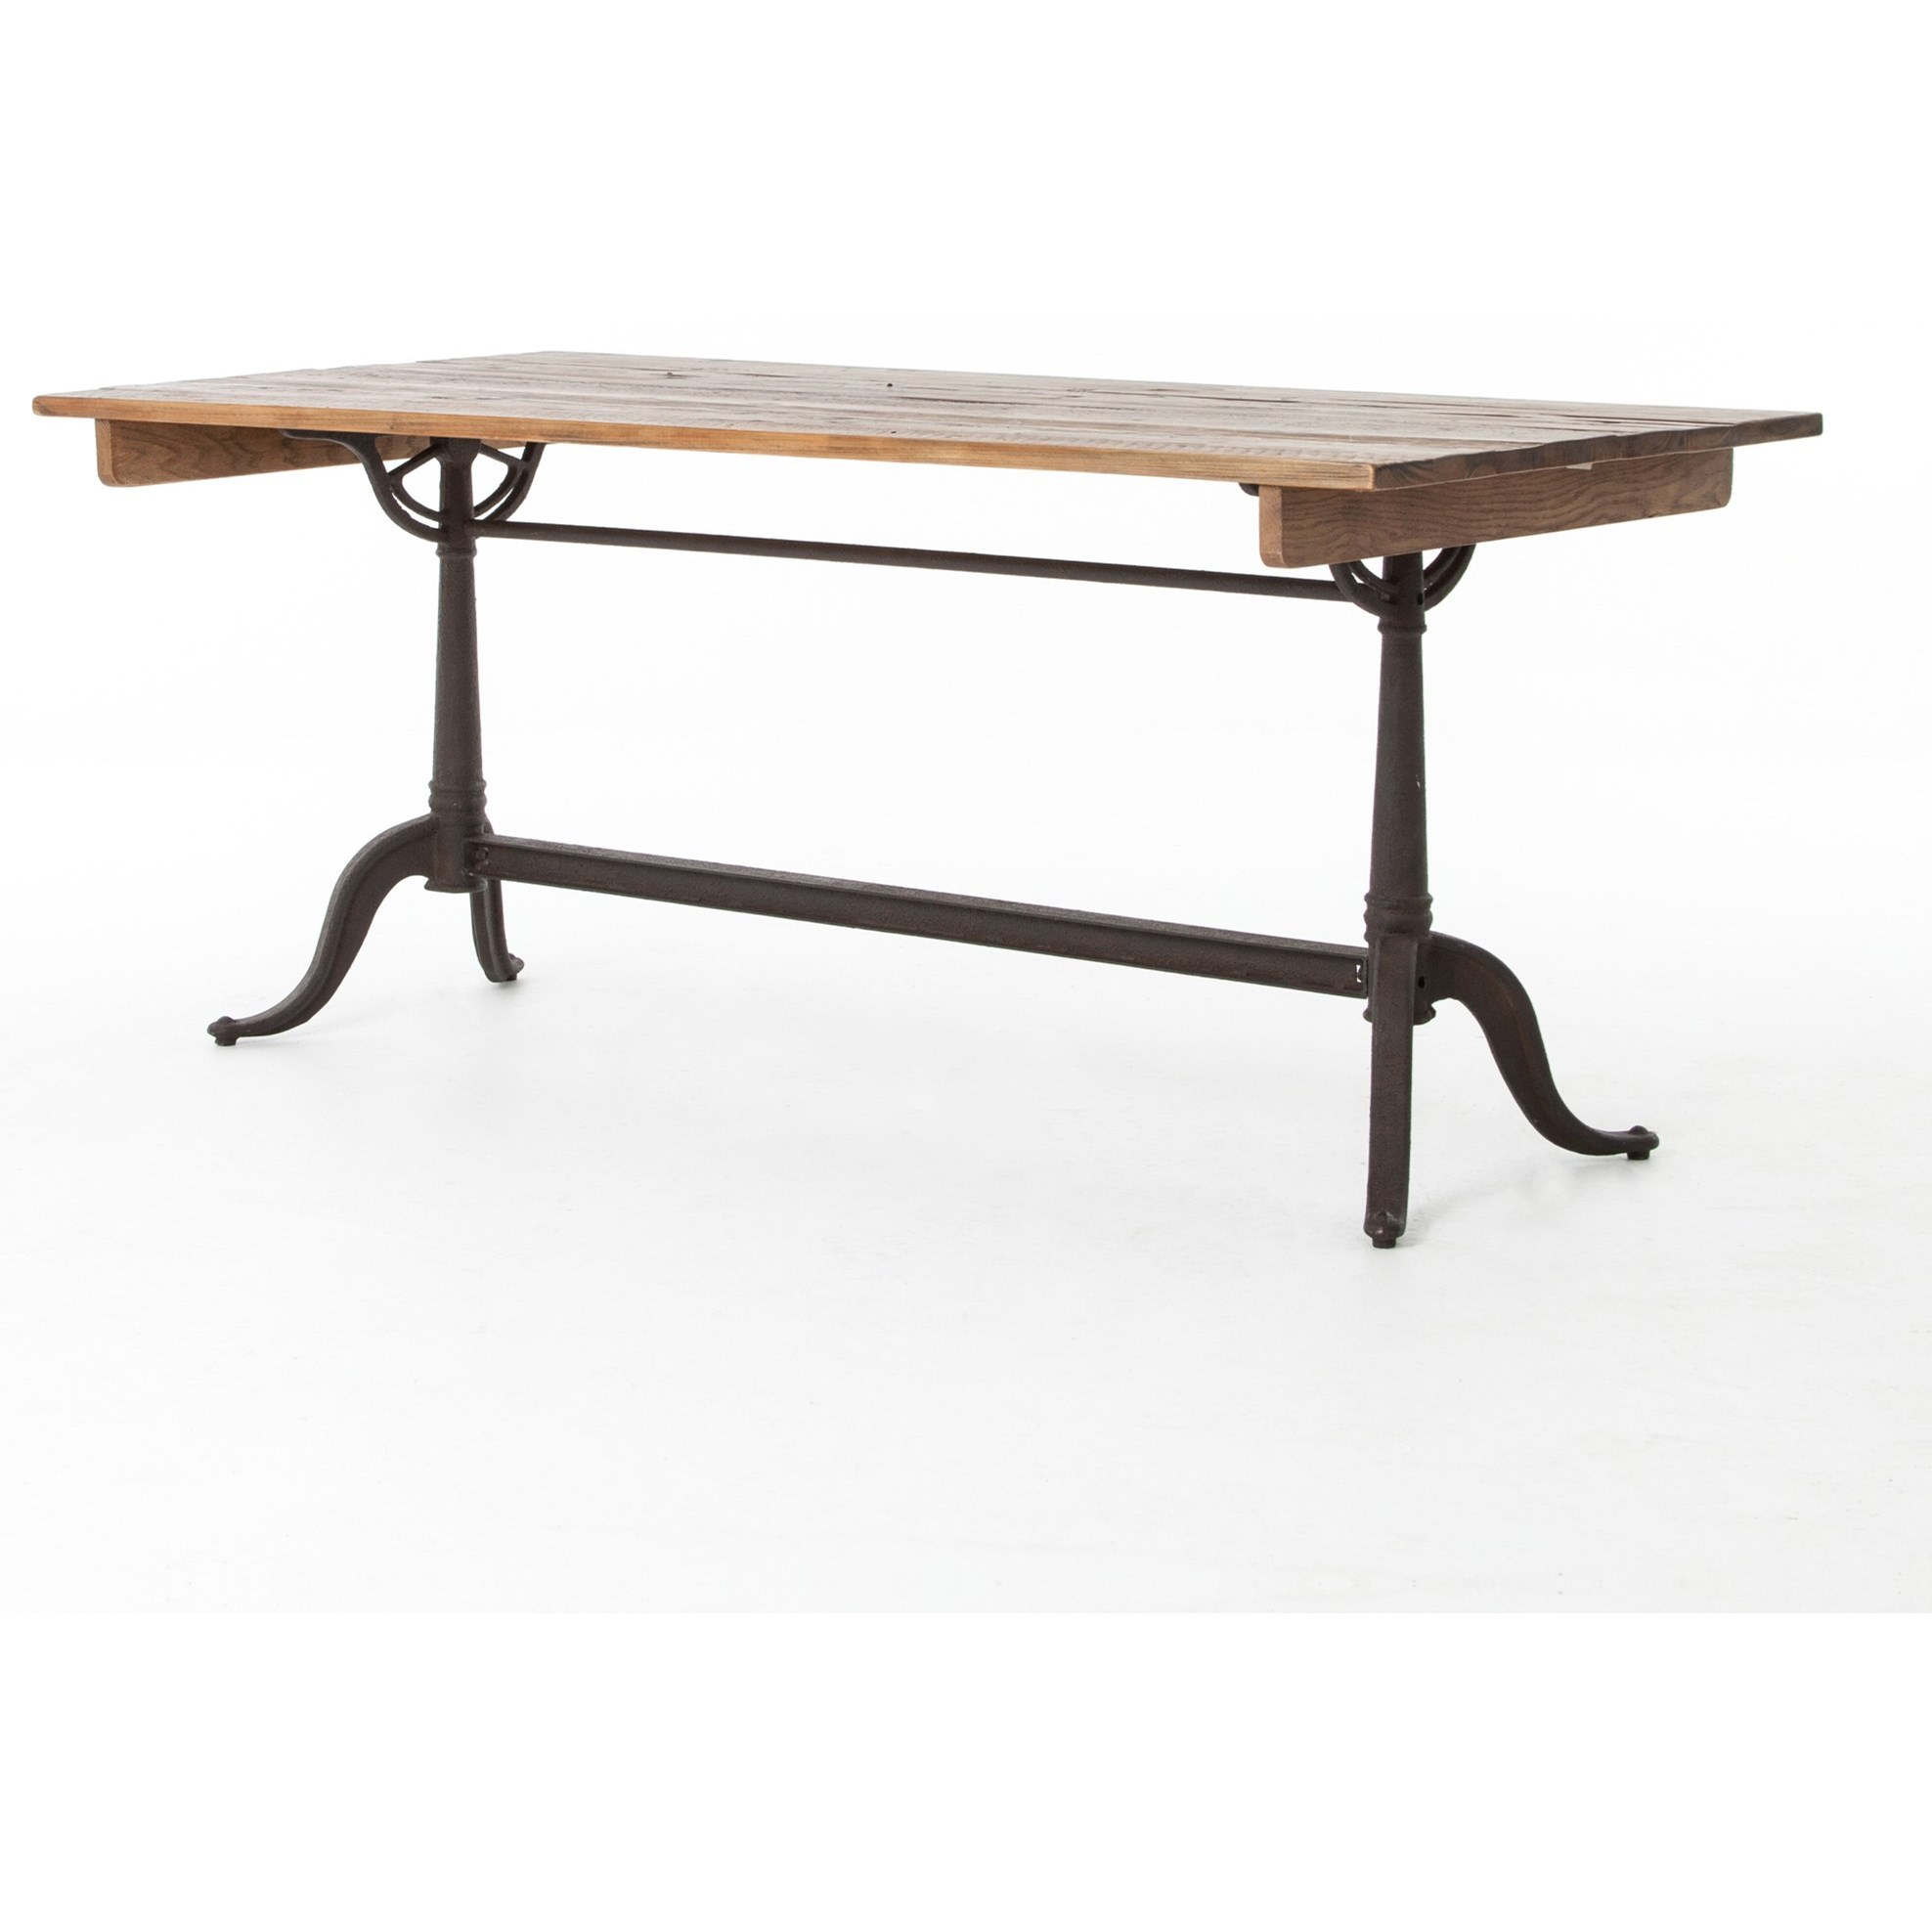 Four Hands Durham Parisian Dining Table with Trestle Base